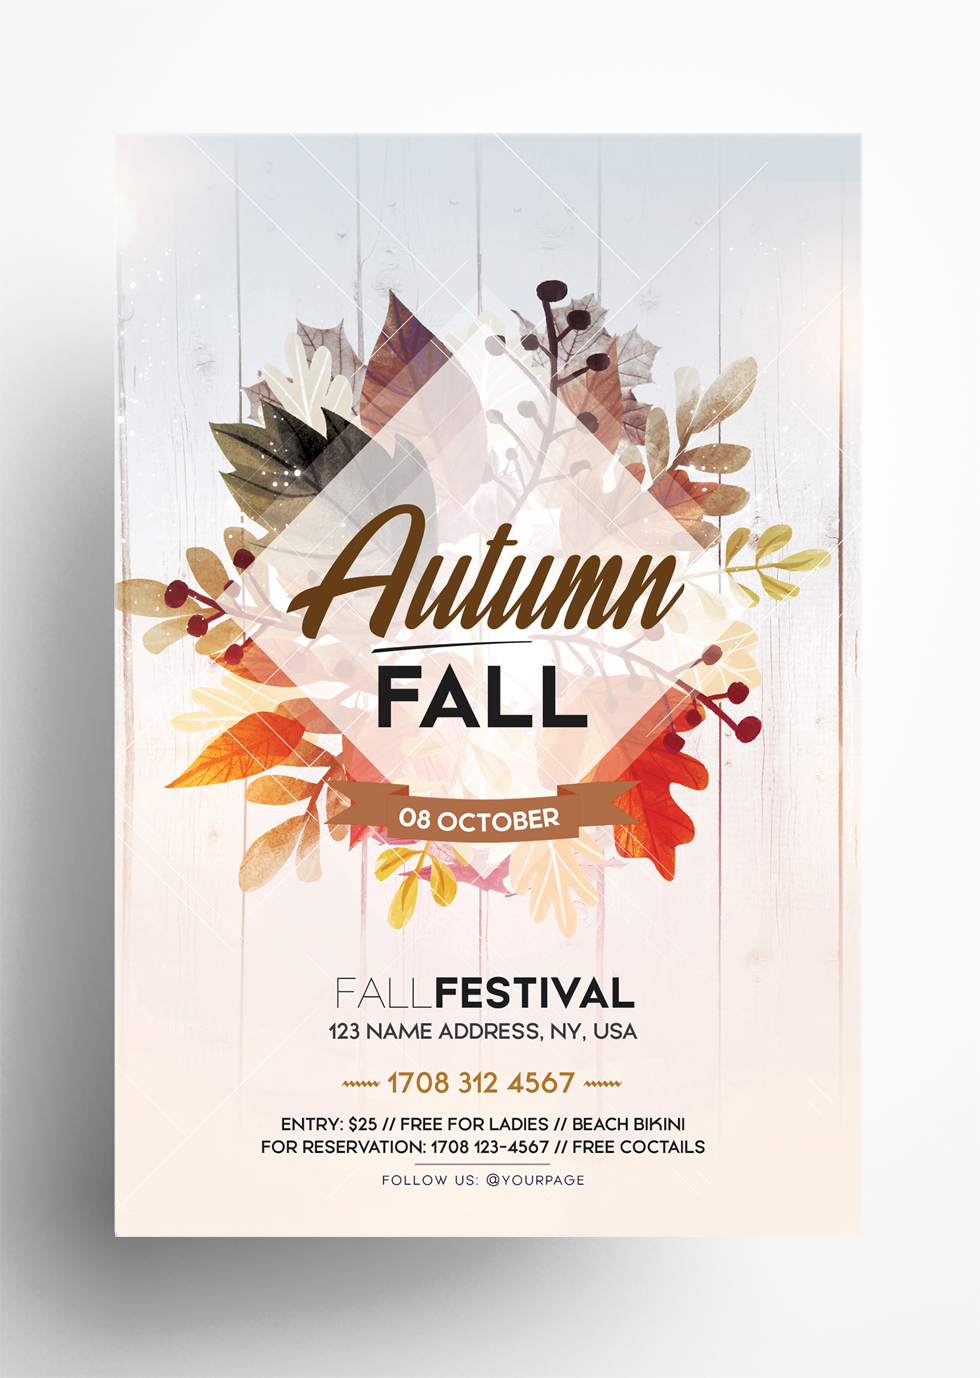 Fall Festival - Autumn Free PSD Flyer Template